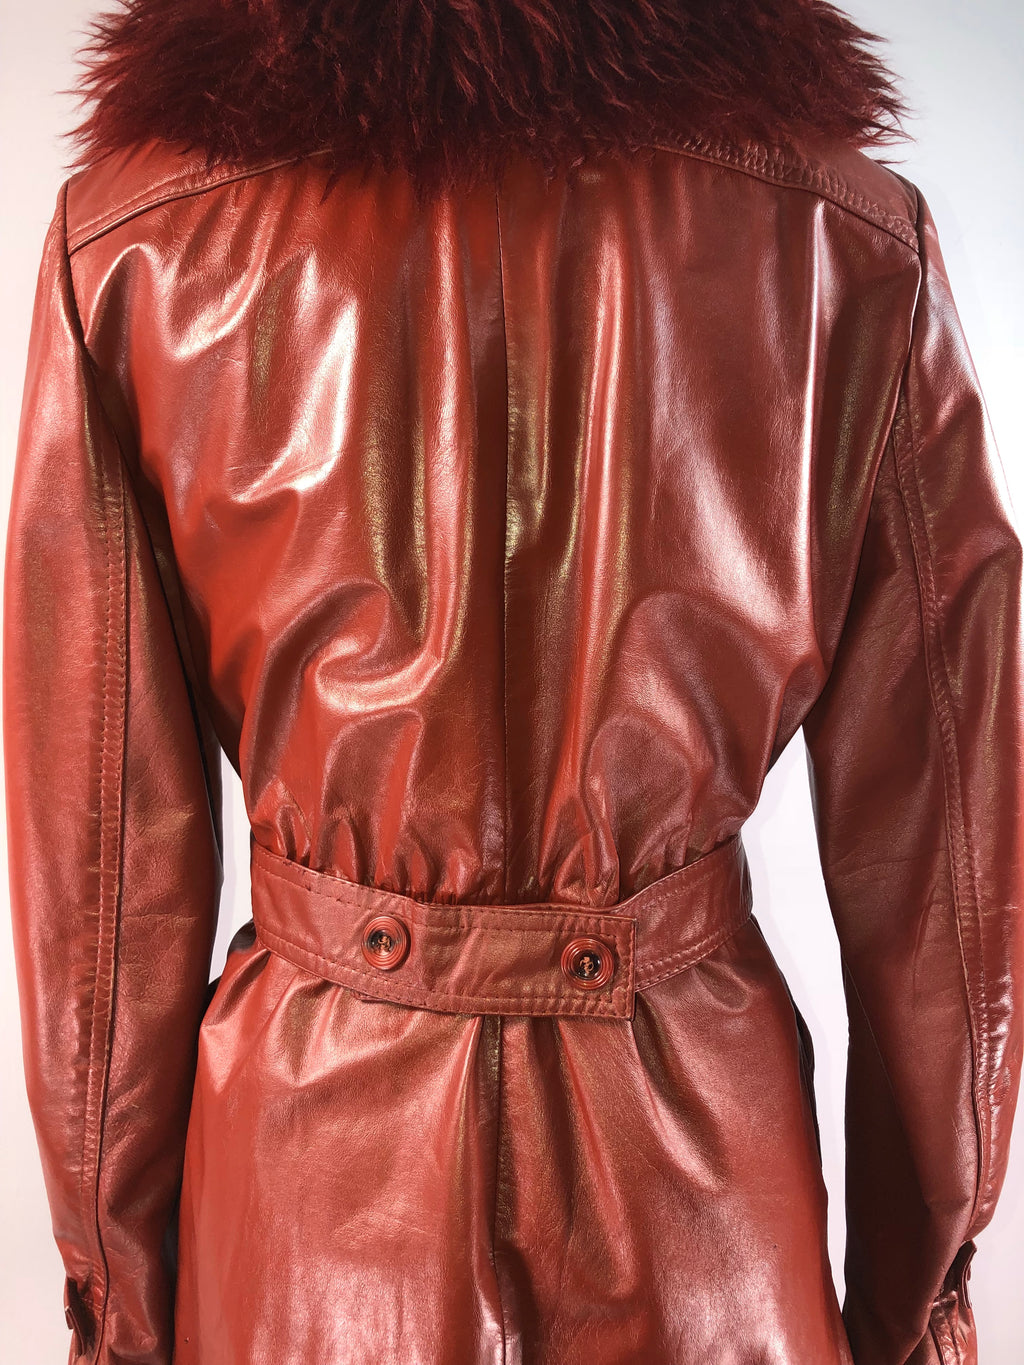 Winlit / 70s Jacket / 1970s Oxblood Red Leather Lamb Jacket